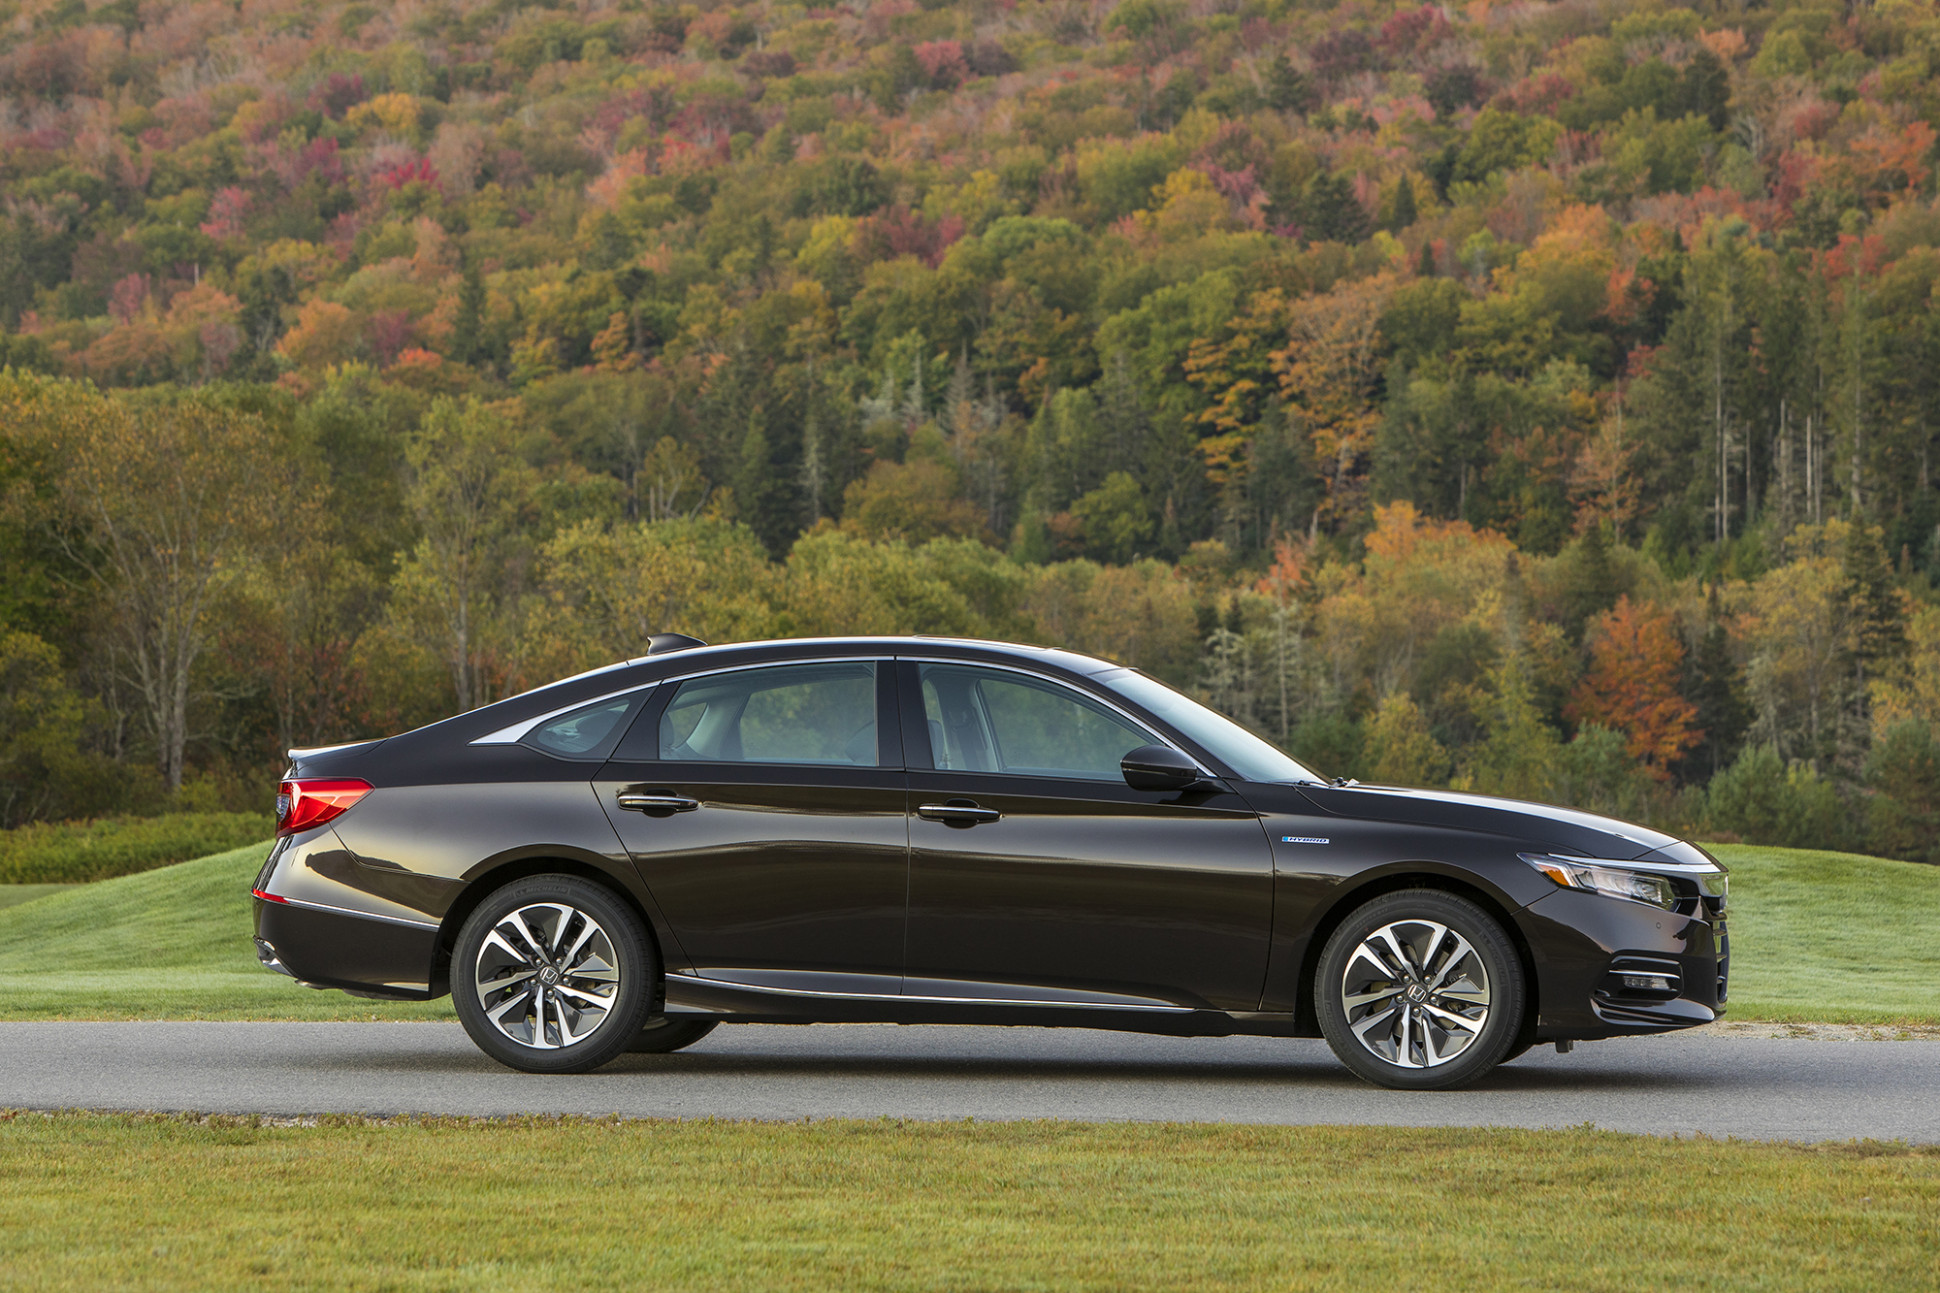 8 Honda Accord Hybrid on Sale Now: 8 Things Shoppers Should ..